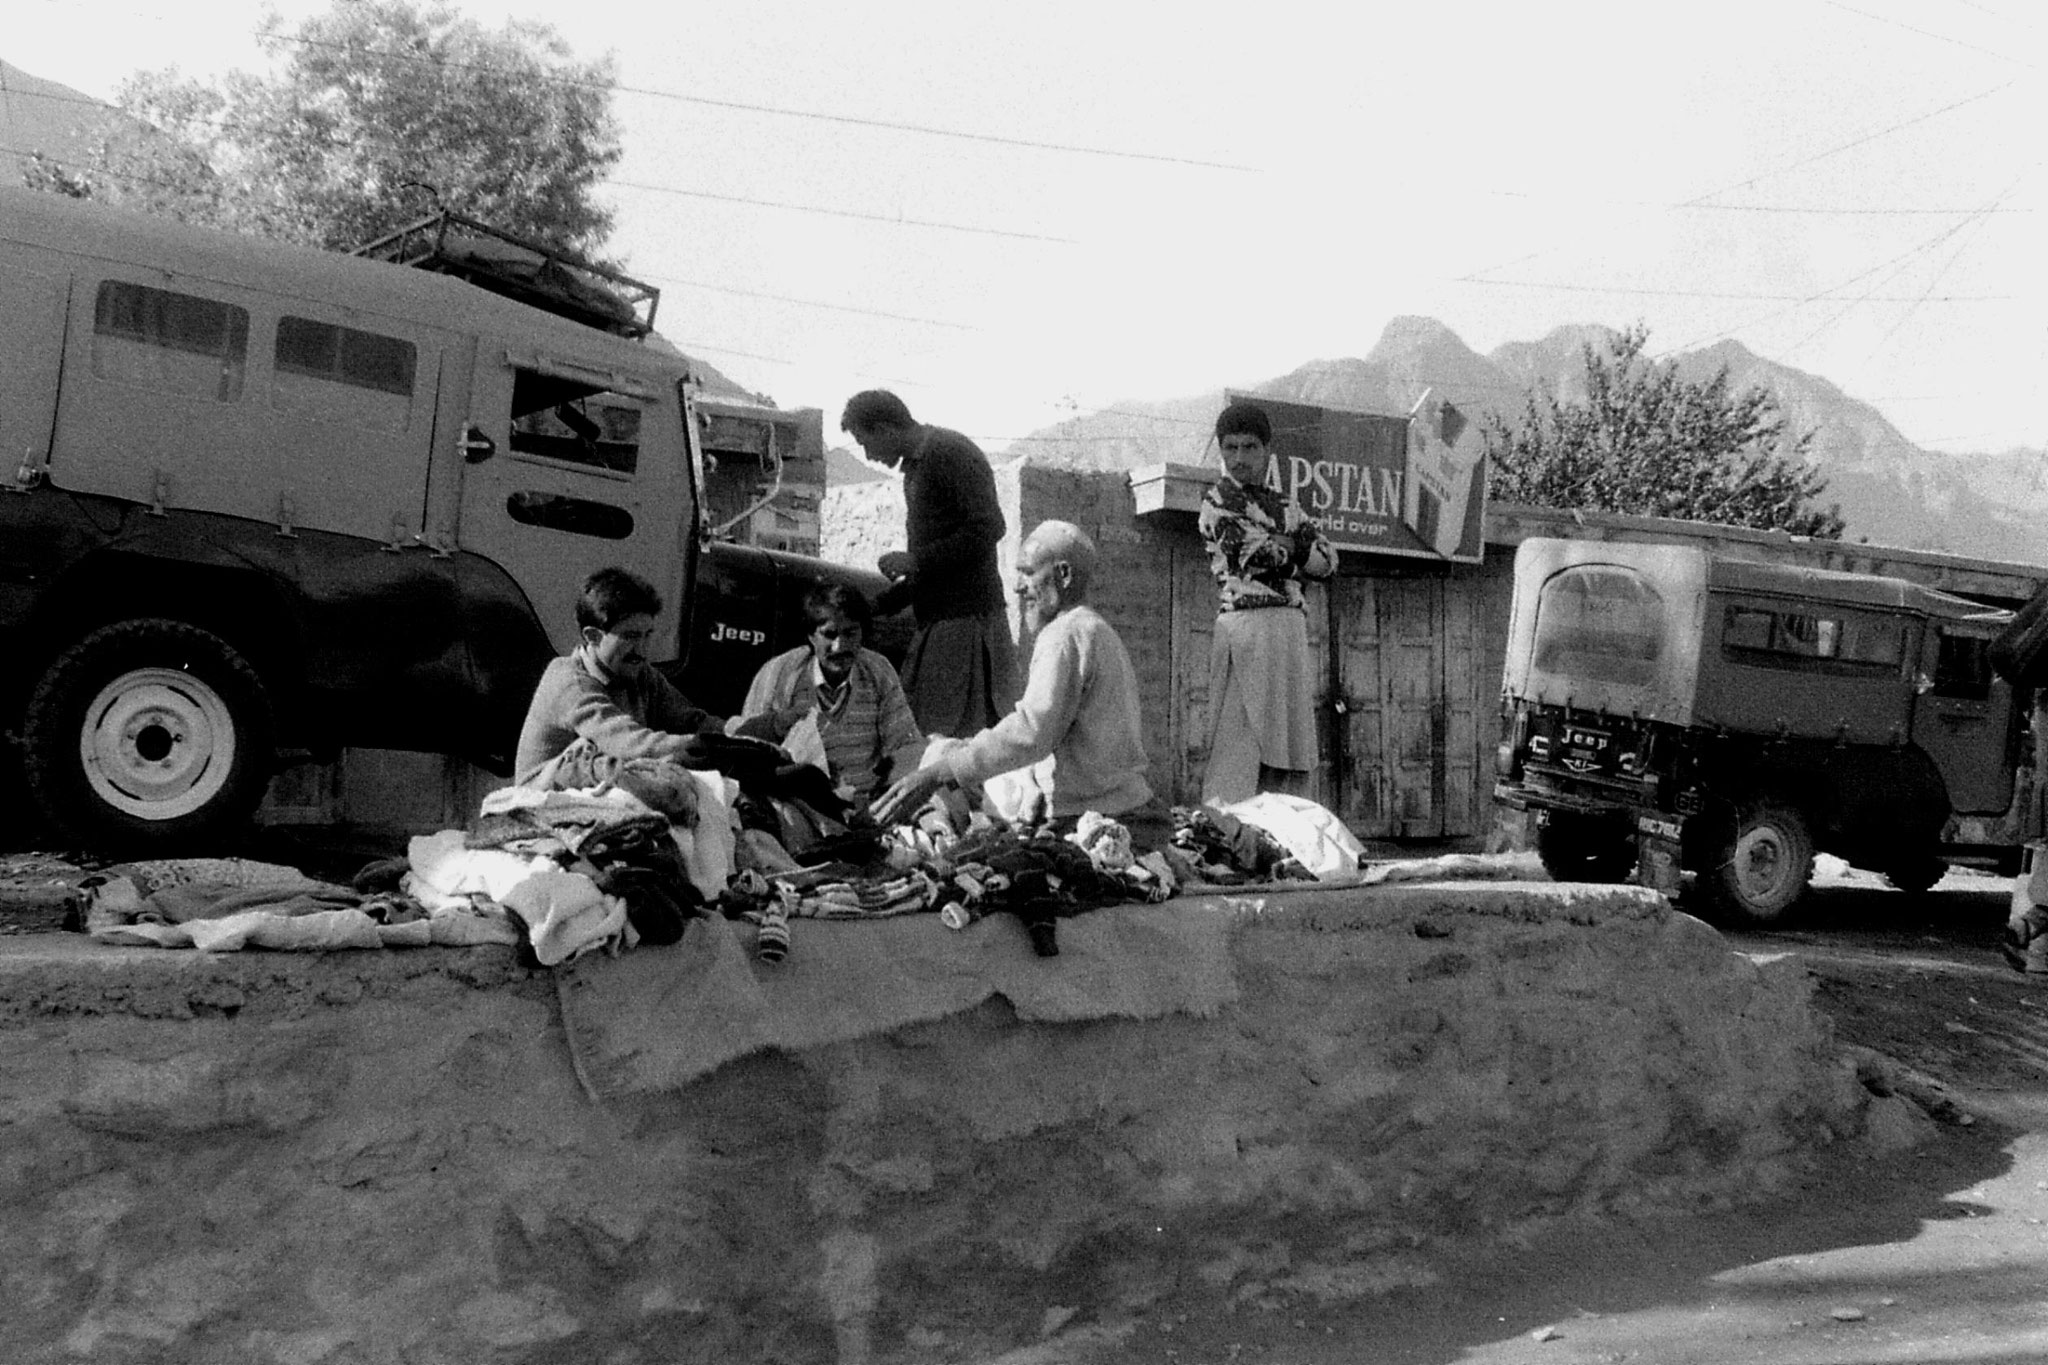 25/10/1989: 12: Gilgit sorting cothes on pavement in bazaar